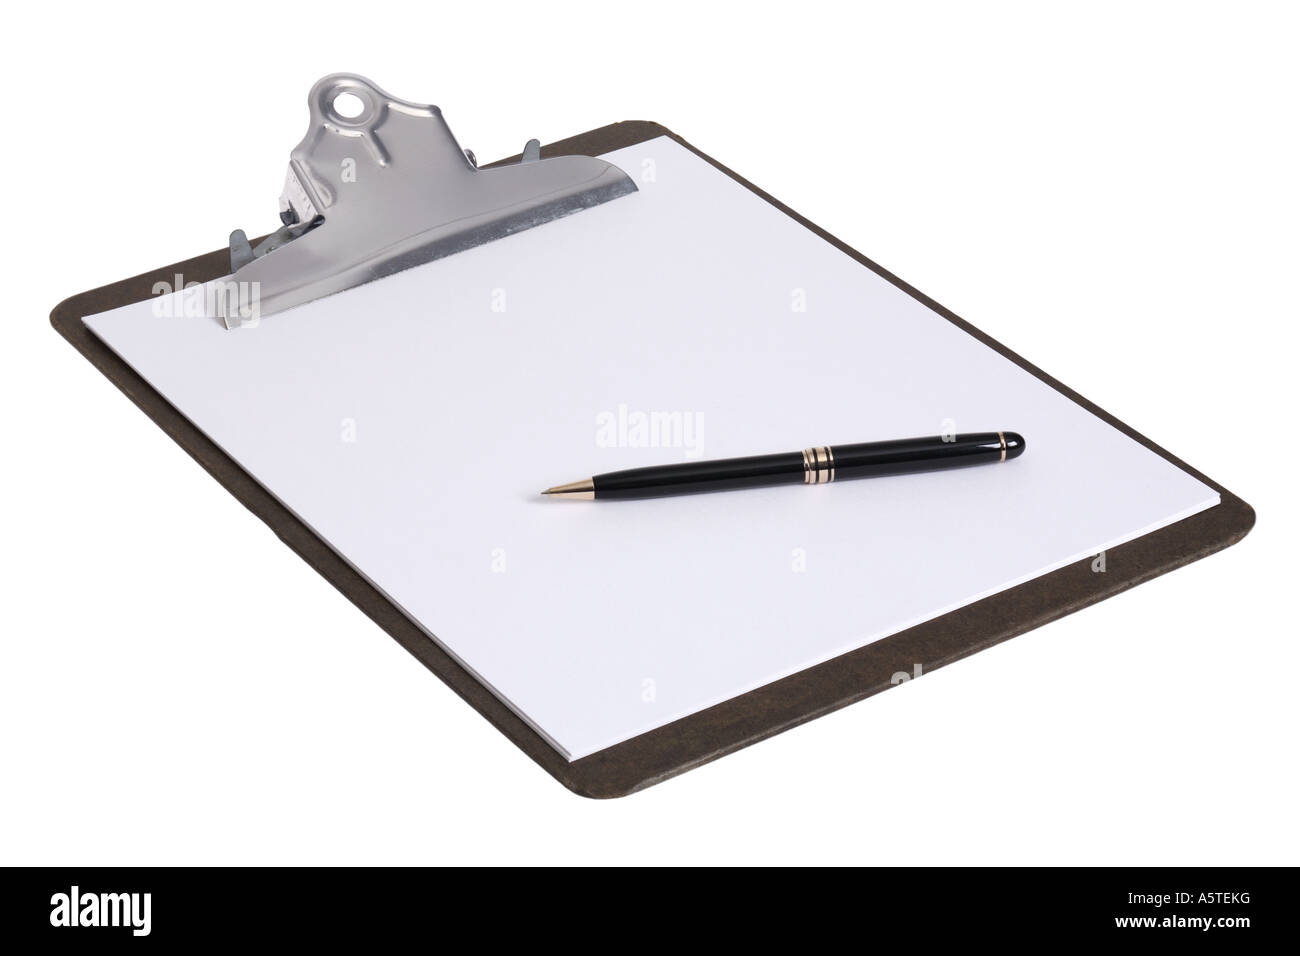 Clipboard with Paper and Pen cut out on white background - Stock Image